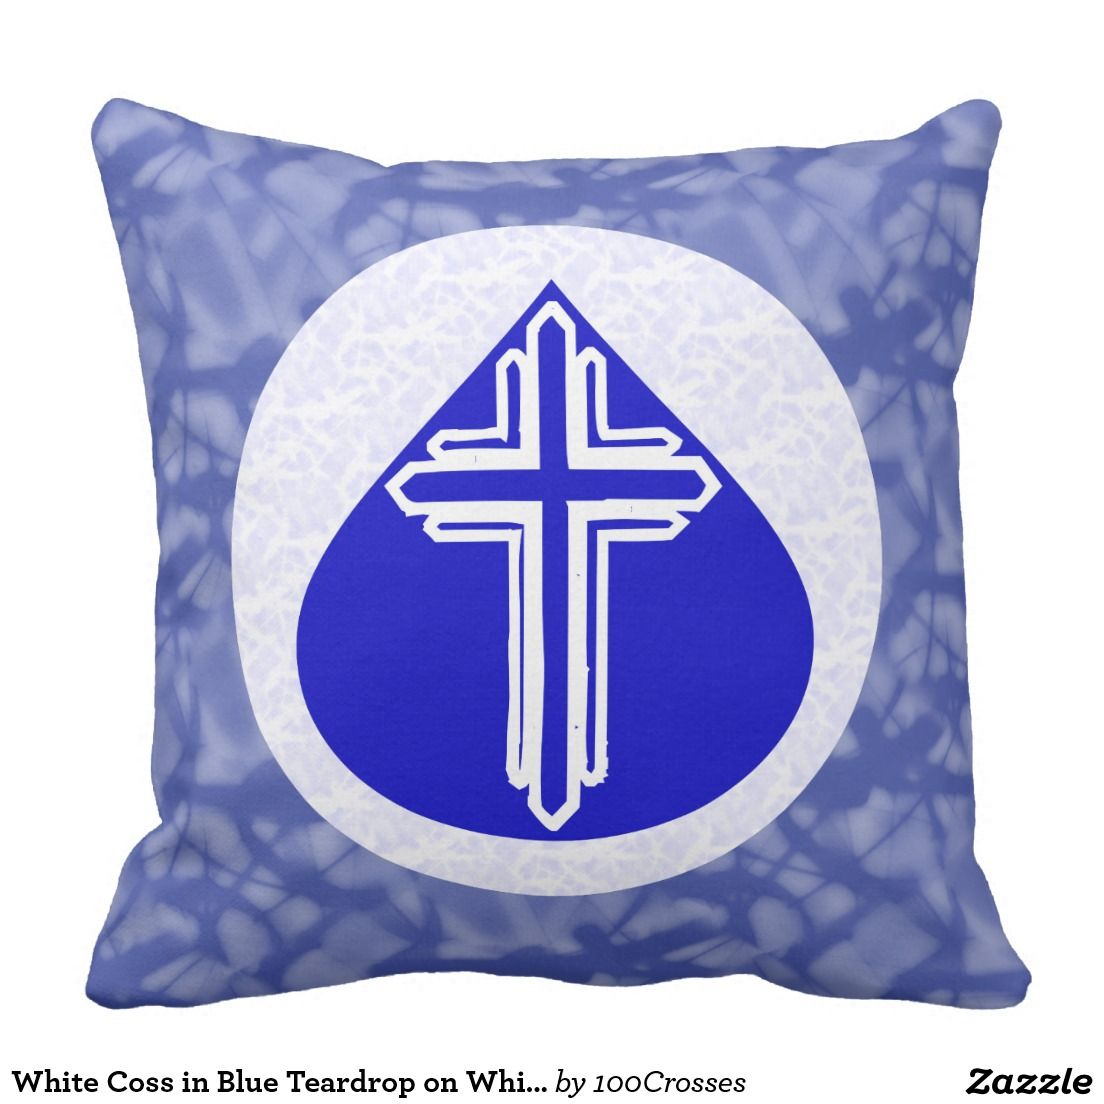 White Coss in Blue Teardrop on White and Blue Outdoor Pillow